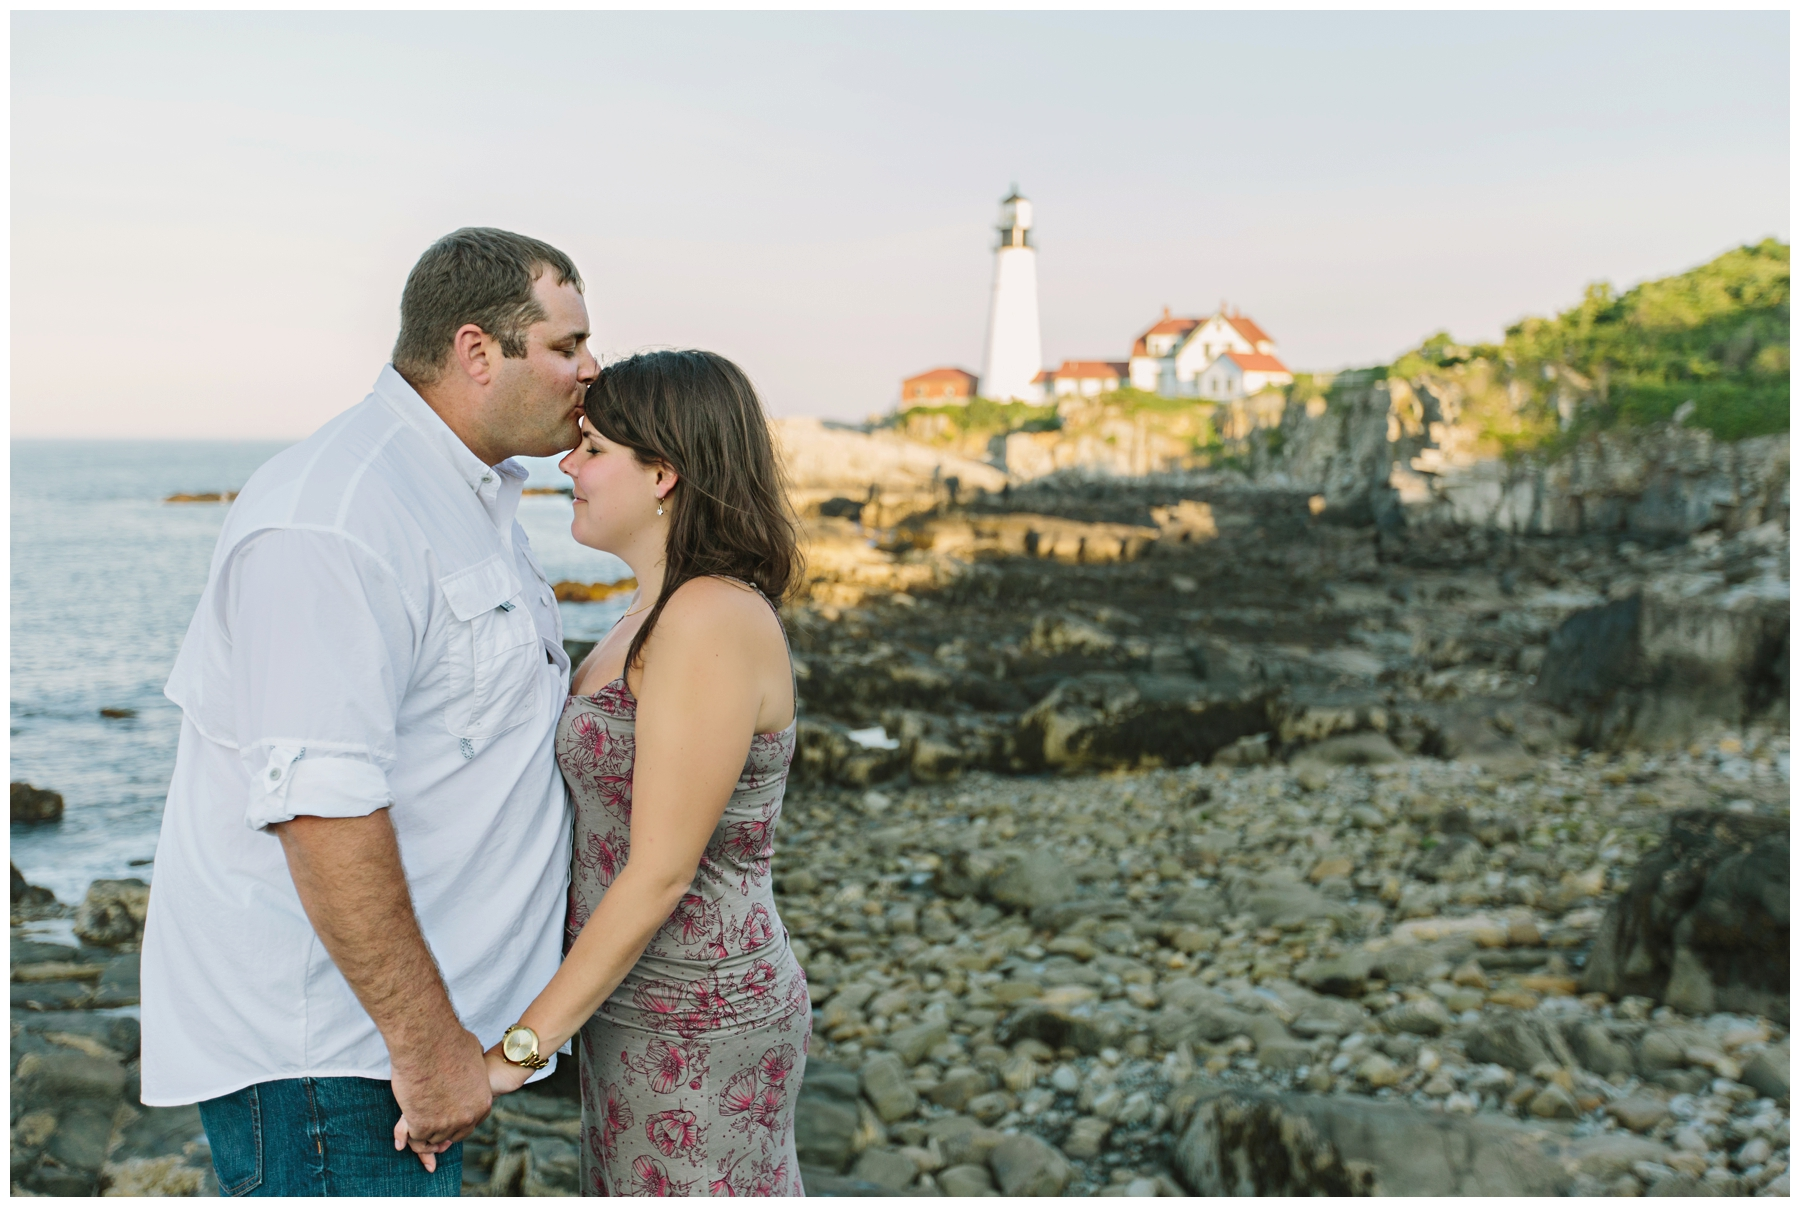 Maine_Photographer_Engagements_FortWilliams_PortlandHeadLight_lighthouse_coastal_seaside-002